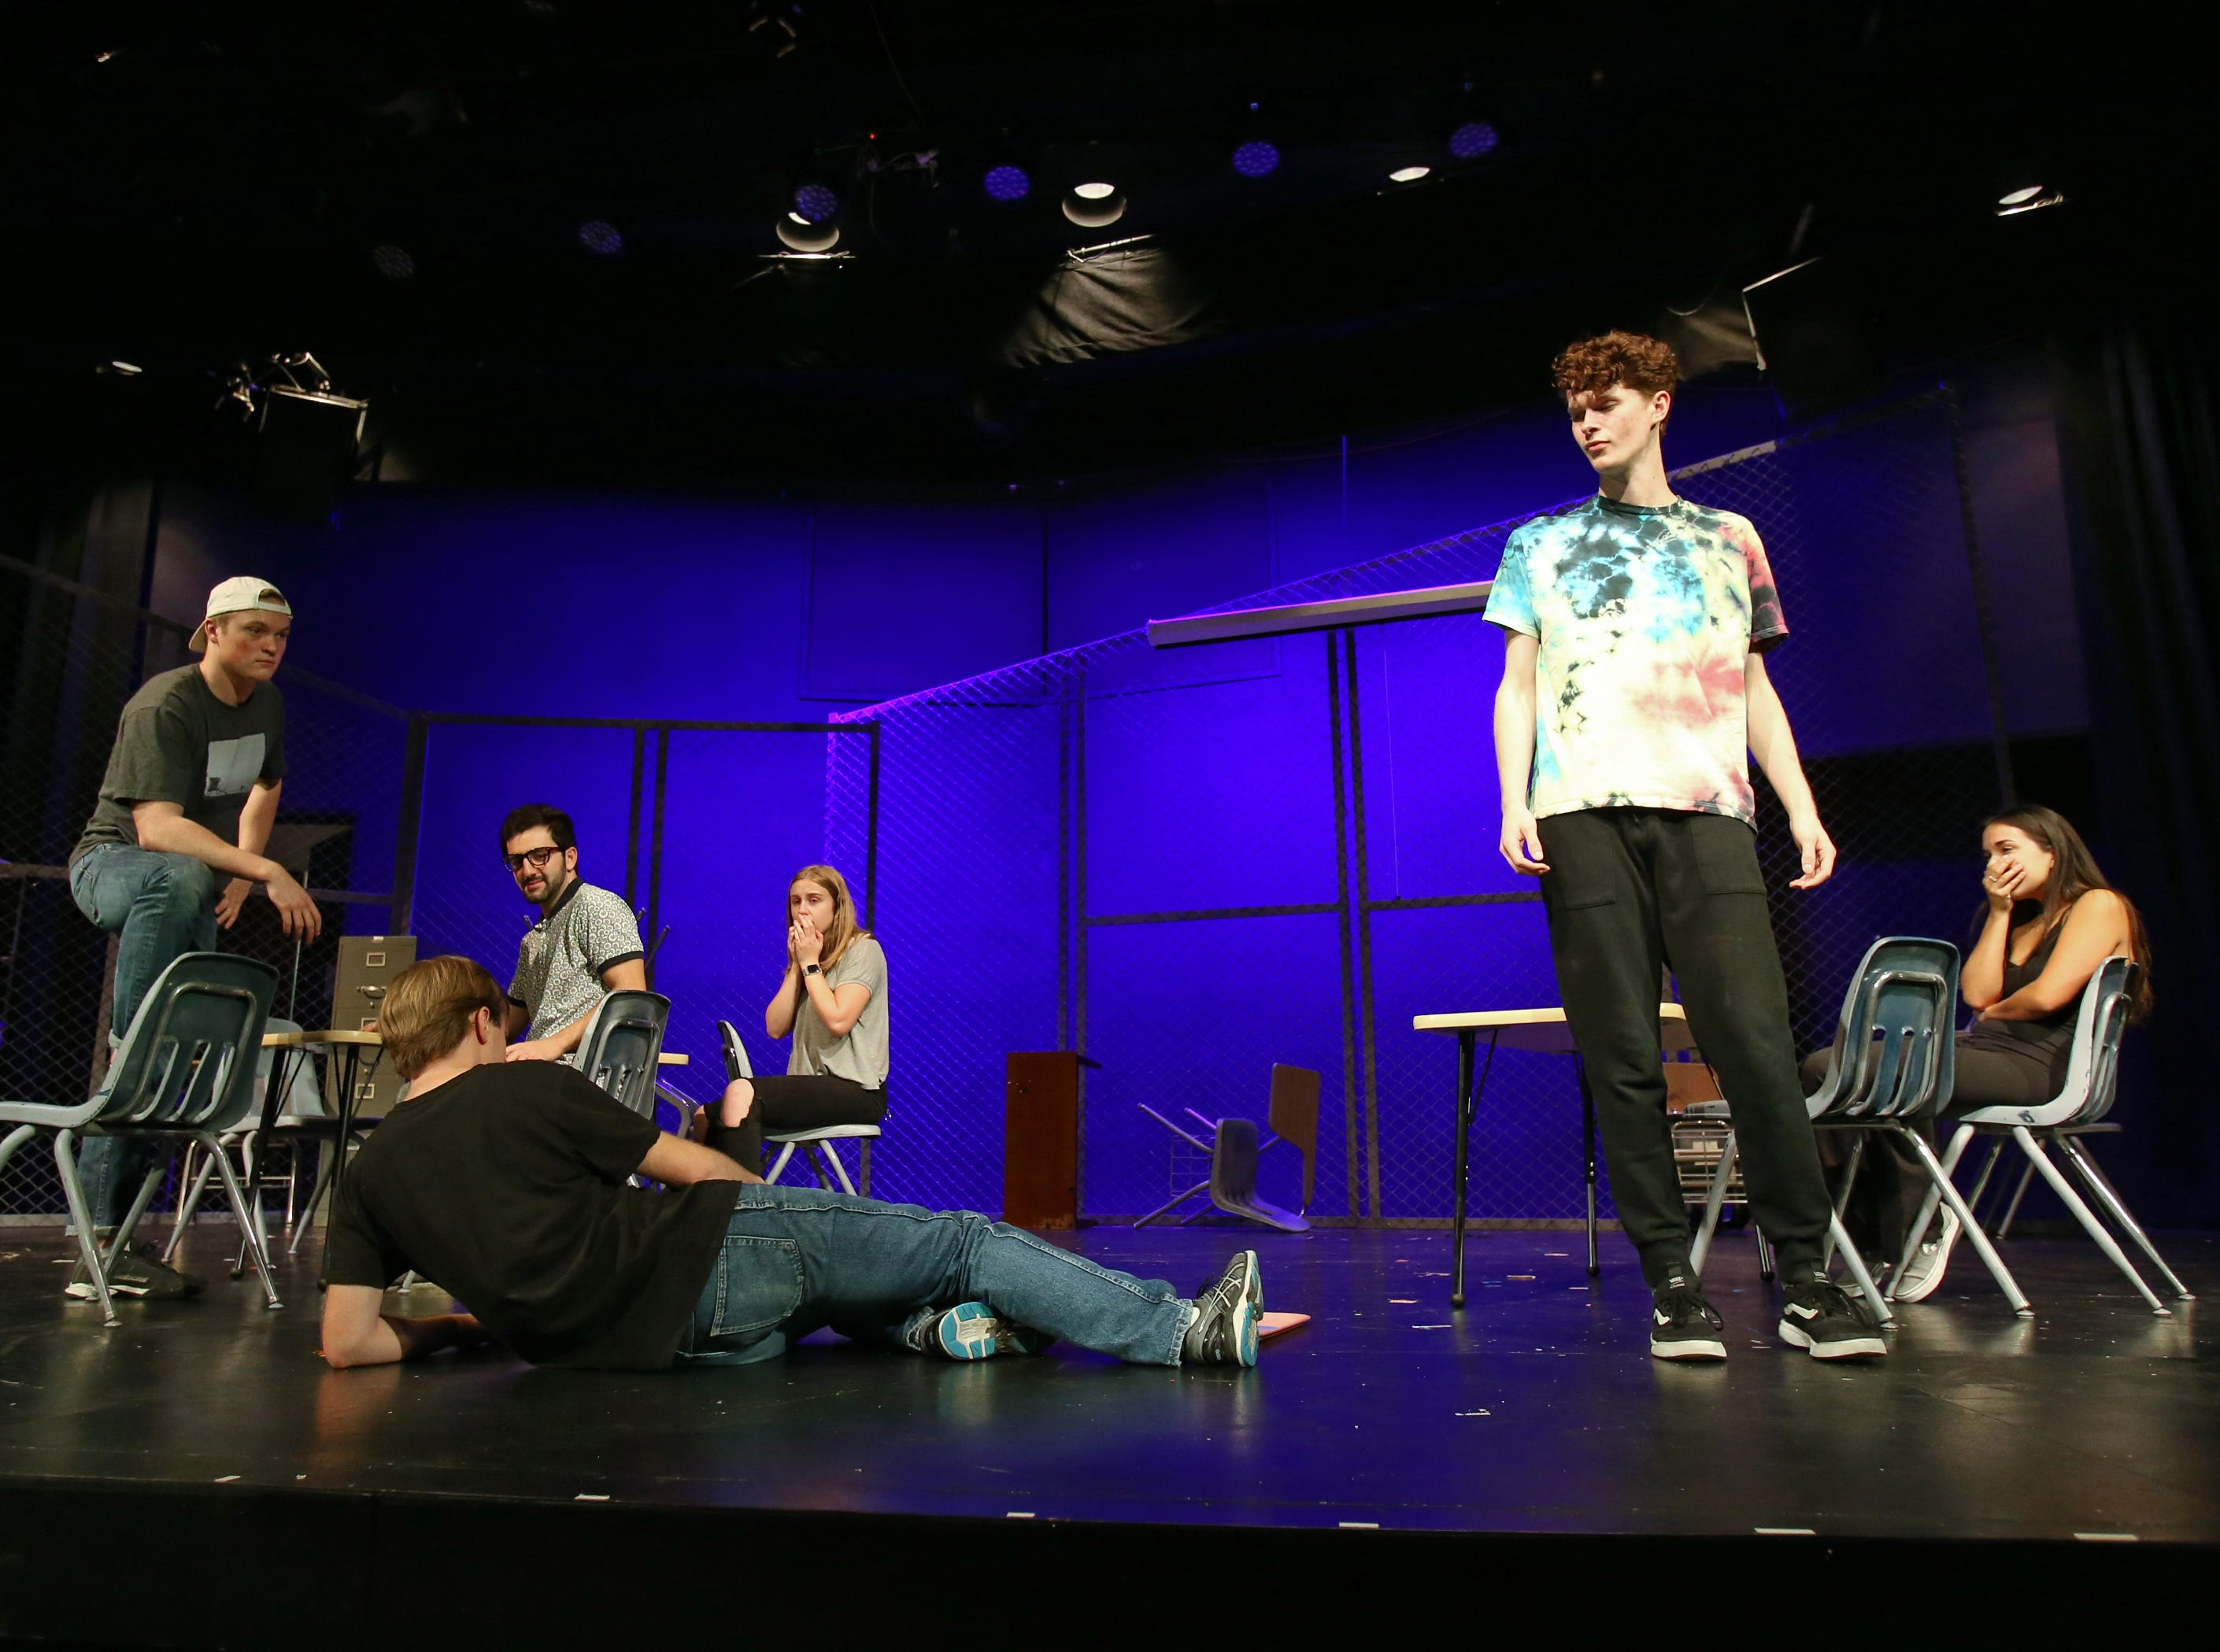 """California Lutheran University drama student Jordan Erickson (right) looks down at Jacob White in one of the power scenes in the school's production of """"Columbinus,"""" which will be staged beginning Thursday at the Preus-Brandt Forum on campus. The play is based on the shooting at Columbine High School in Littleton, Colorado, in 1999. Erickson plays shooter Dylan Klebold in the play that runs through Nov 18."""